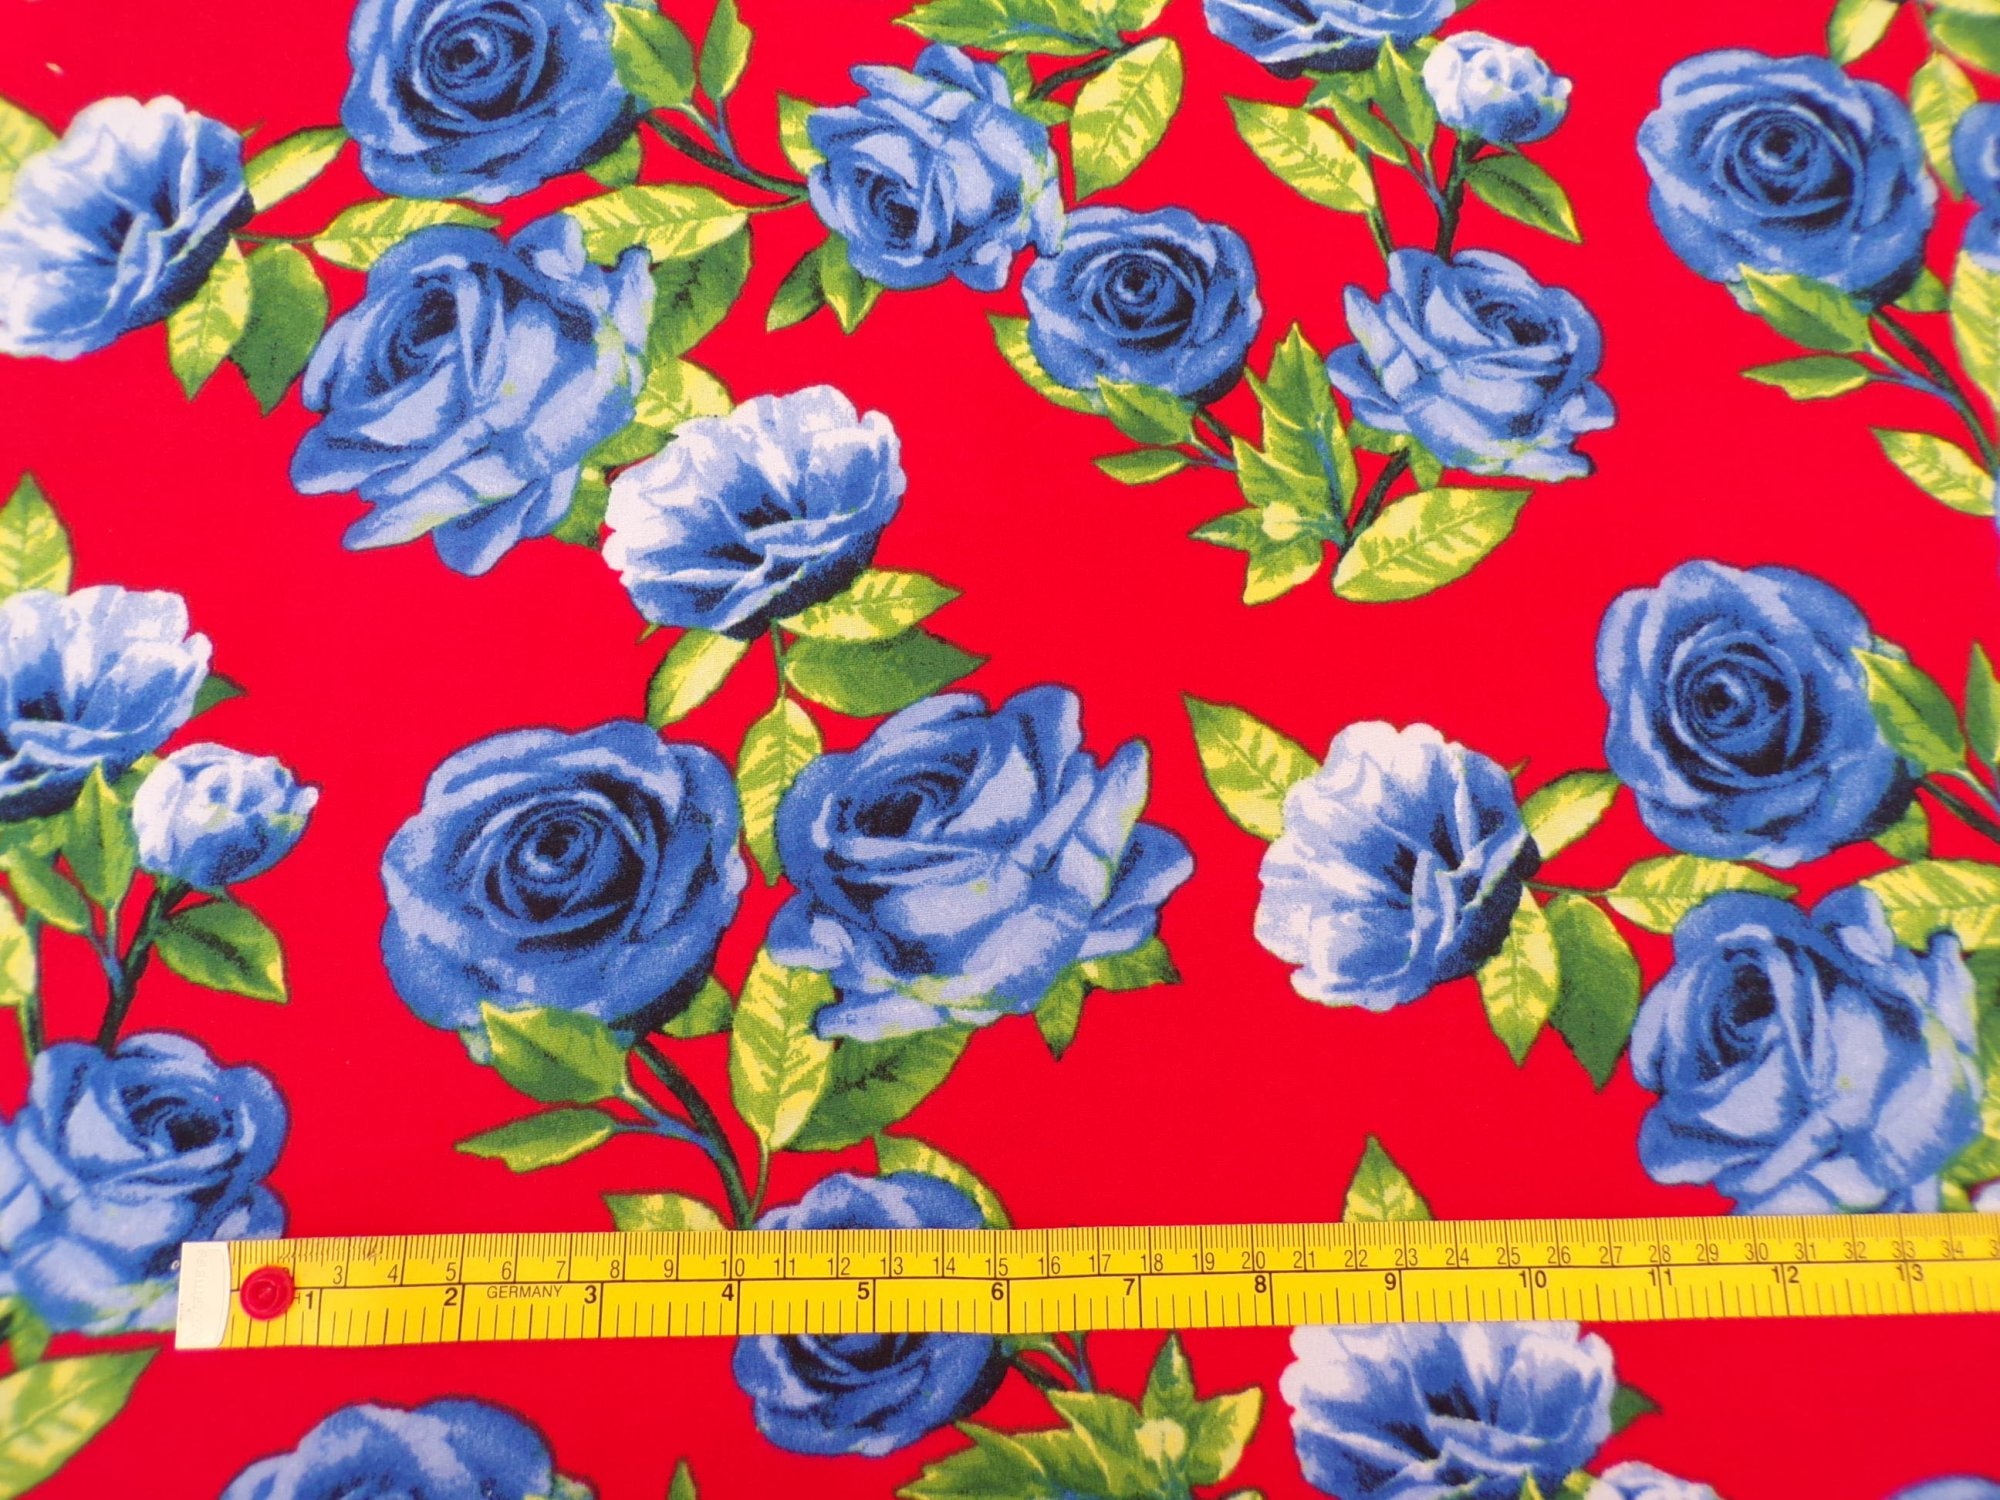 Brushed Polyester - Red with Blue Roses